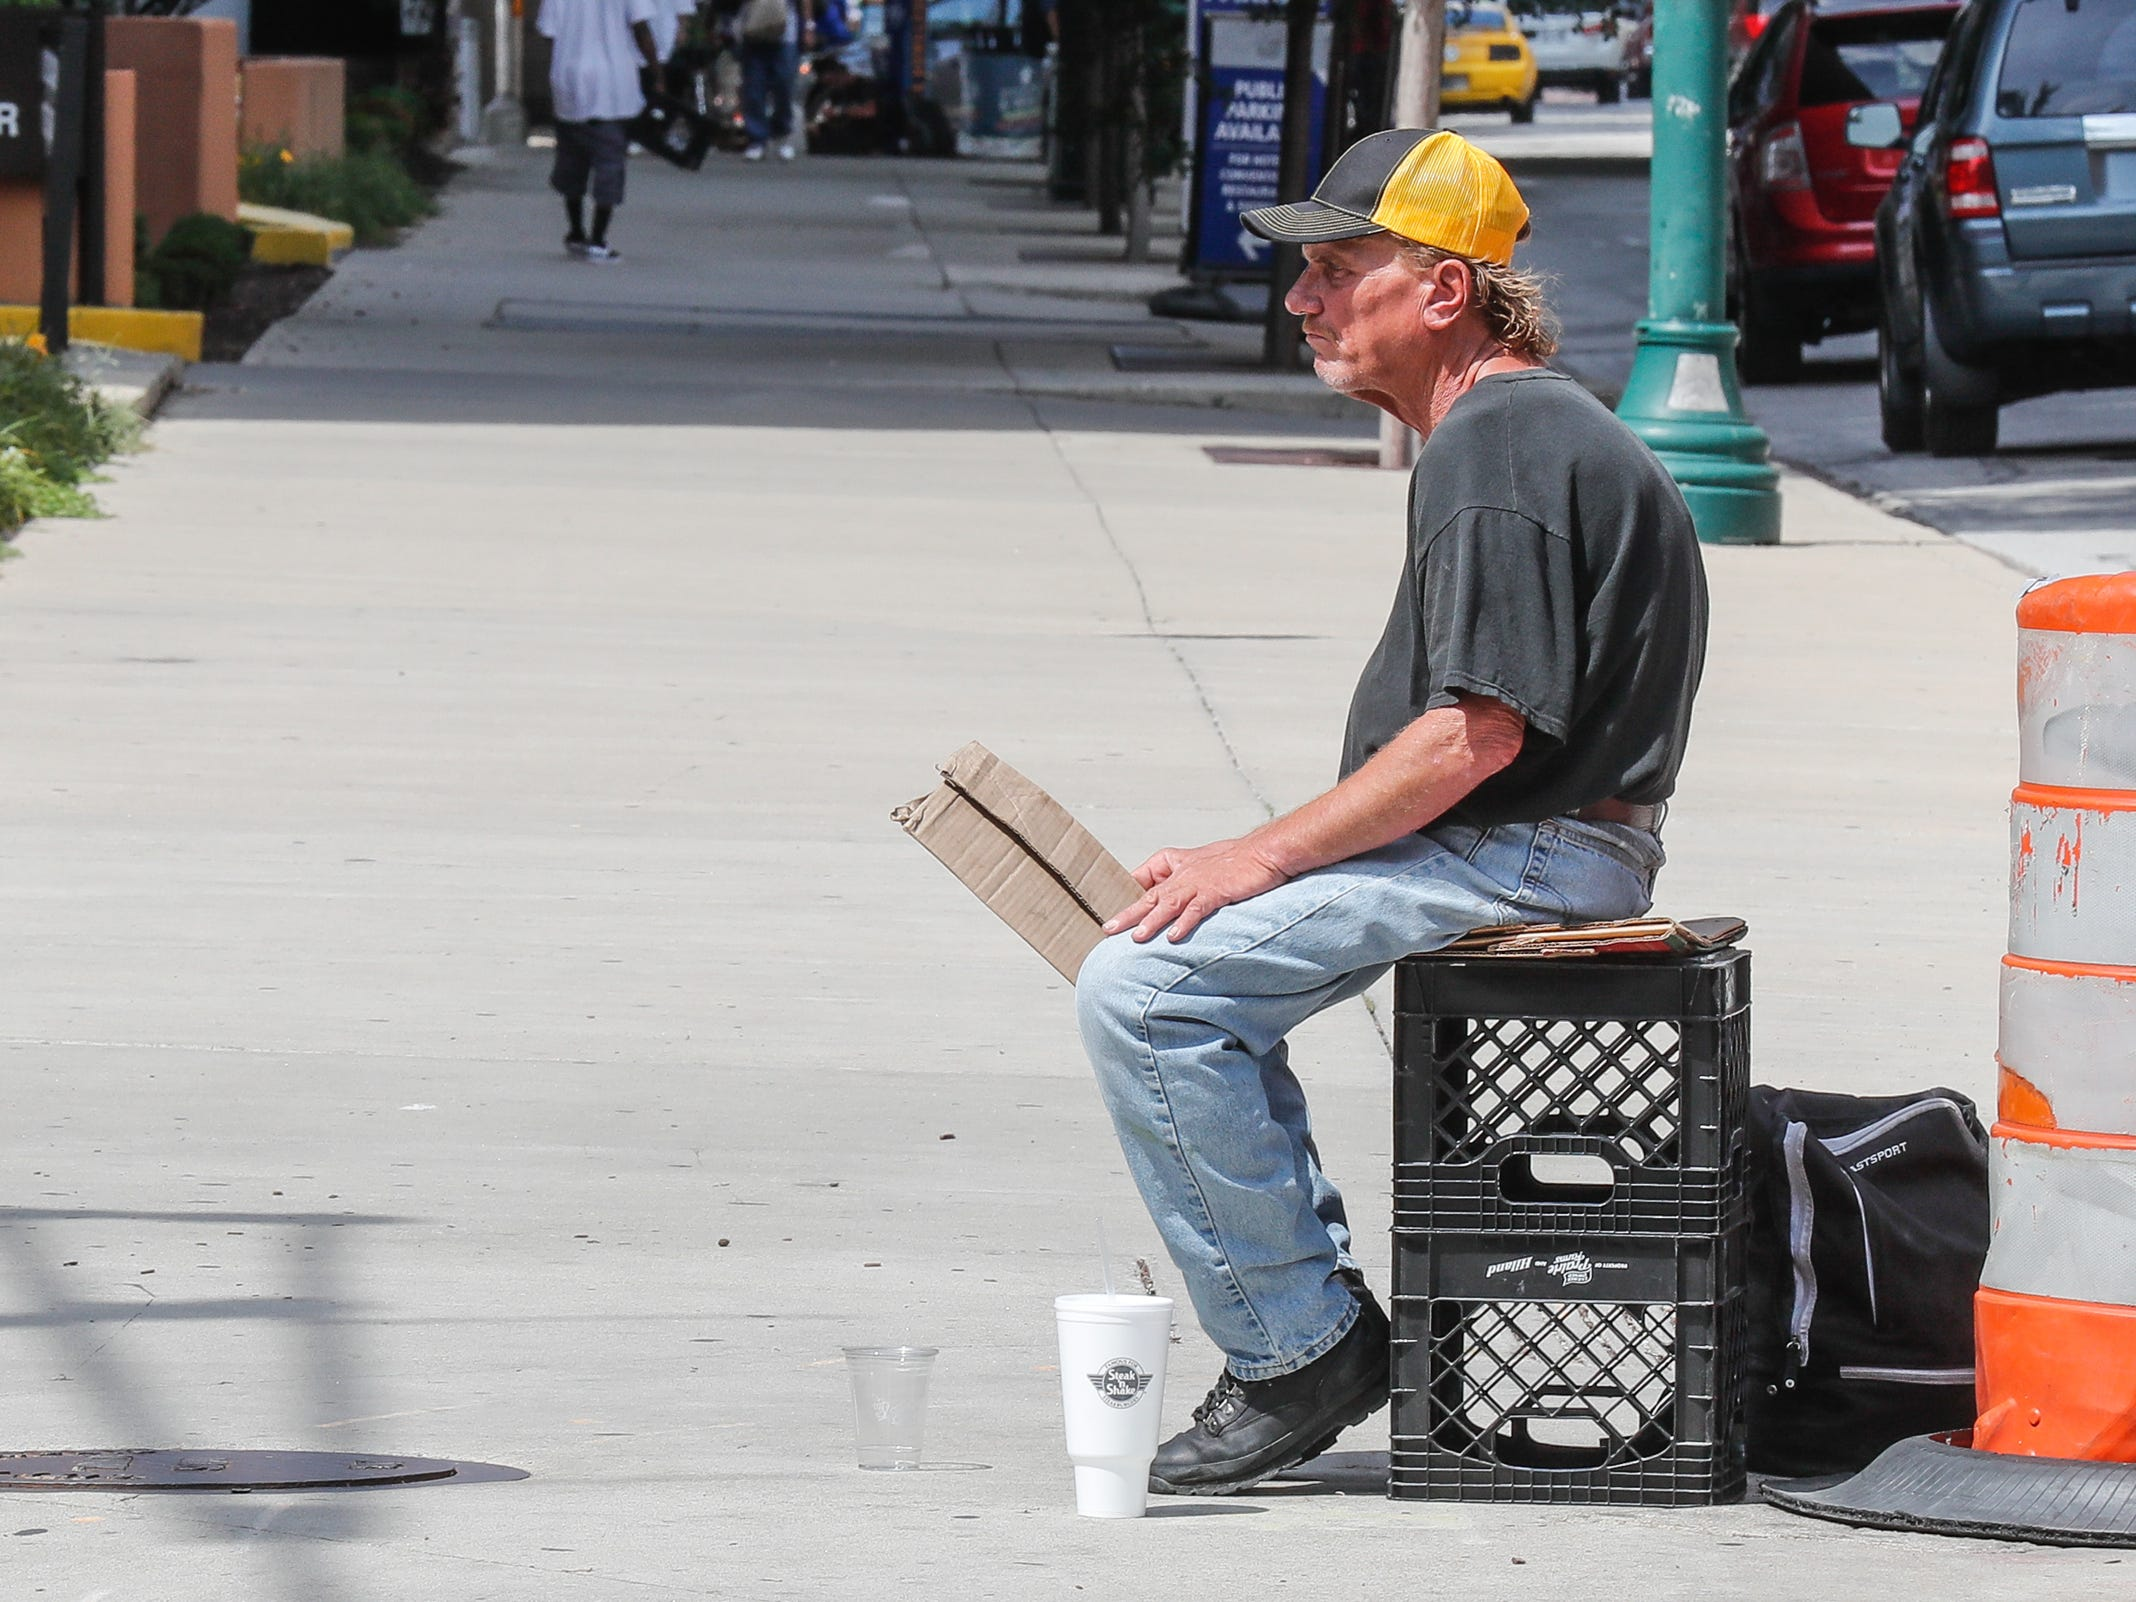 A man begs for money on a street corner in Indianapolis on Thursday, Aug. 9.2018.